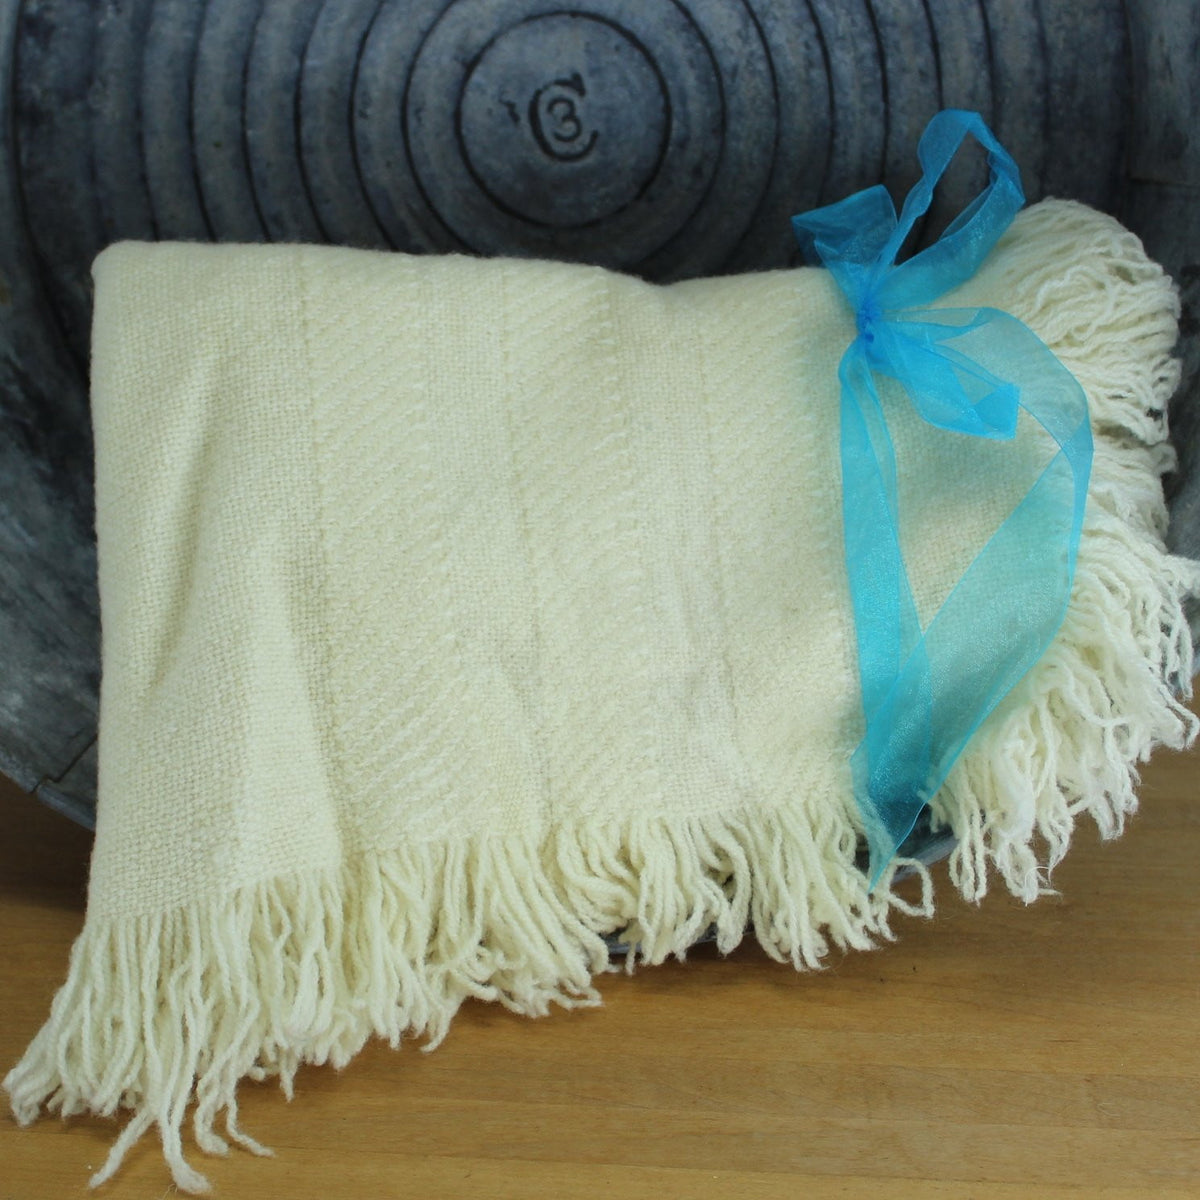 Unbranded Wool Throw Hand Woven Ivory Fringe 4 Sides 39 X 60 Olde Kitchen Home